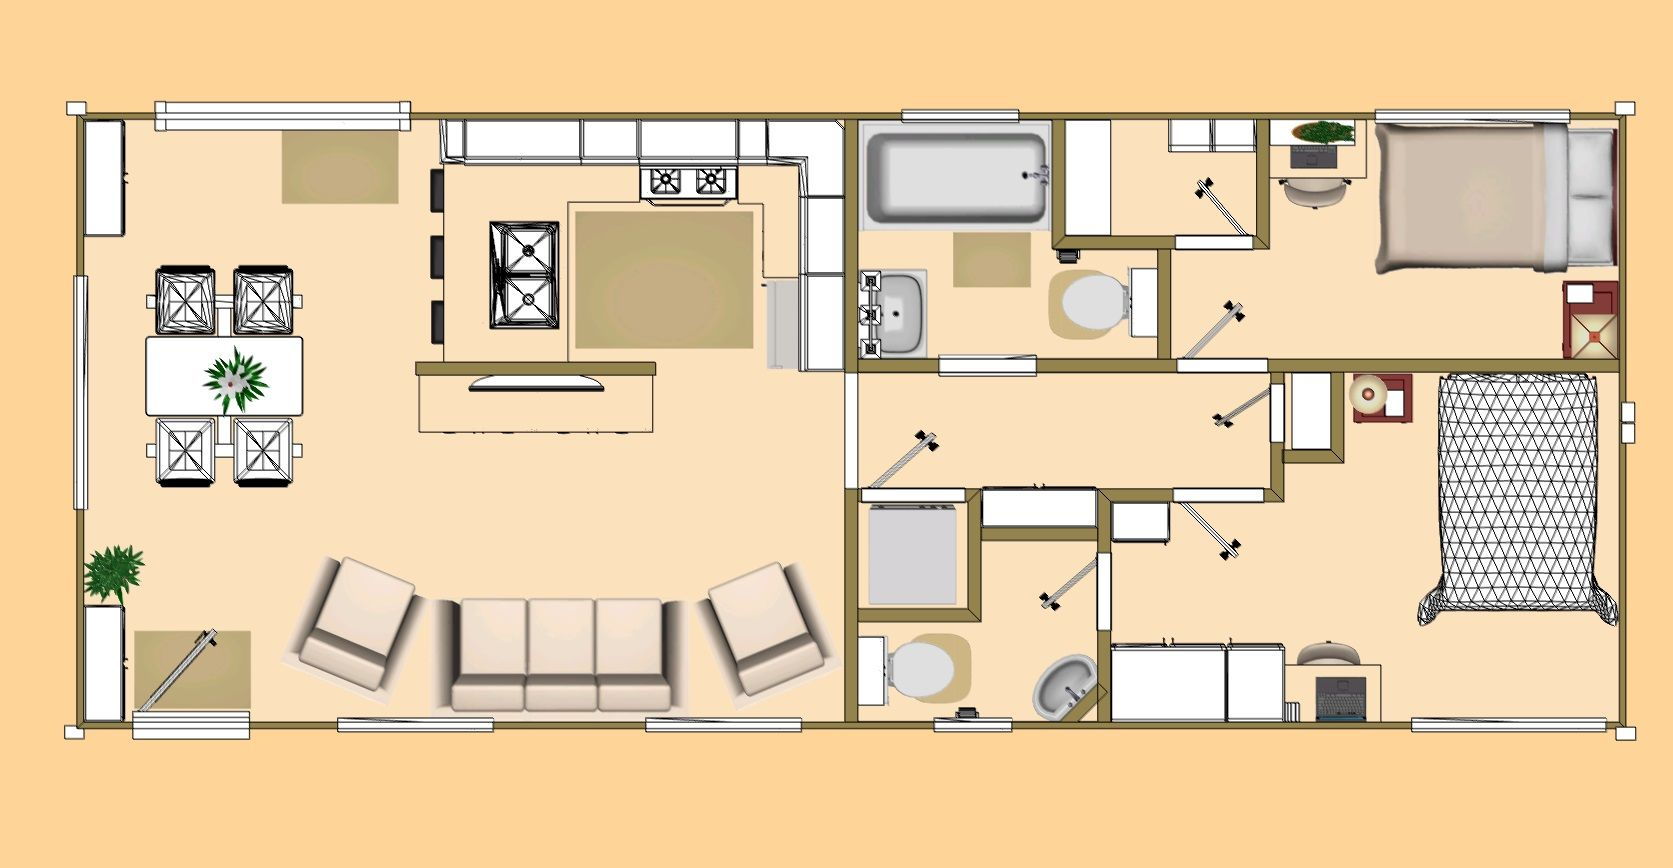 Floor Plan Of Our 640 Sq Ft Daybreak Floor Plan Using 2 X 40 Shipping Con Container House Plans Shipping Container Home Designs Shipping Container House Plans